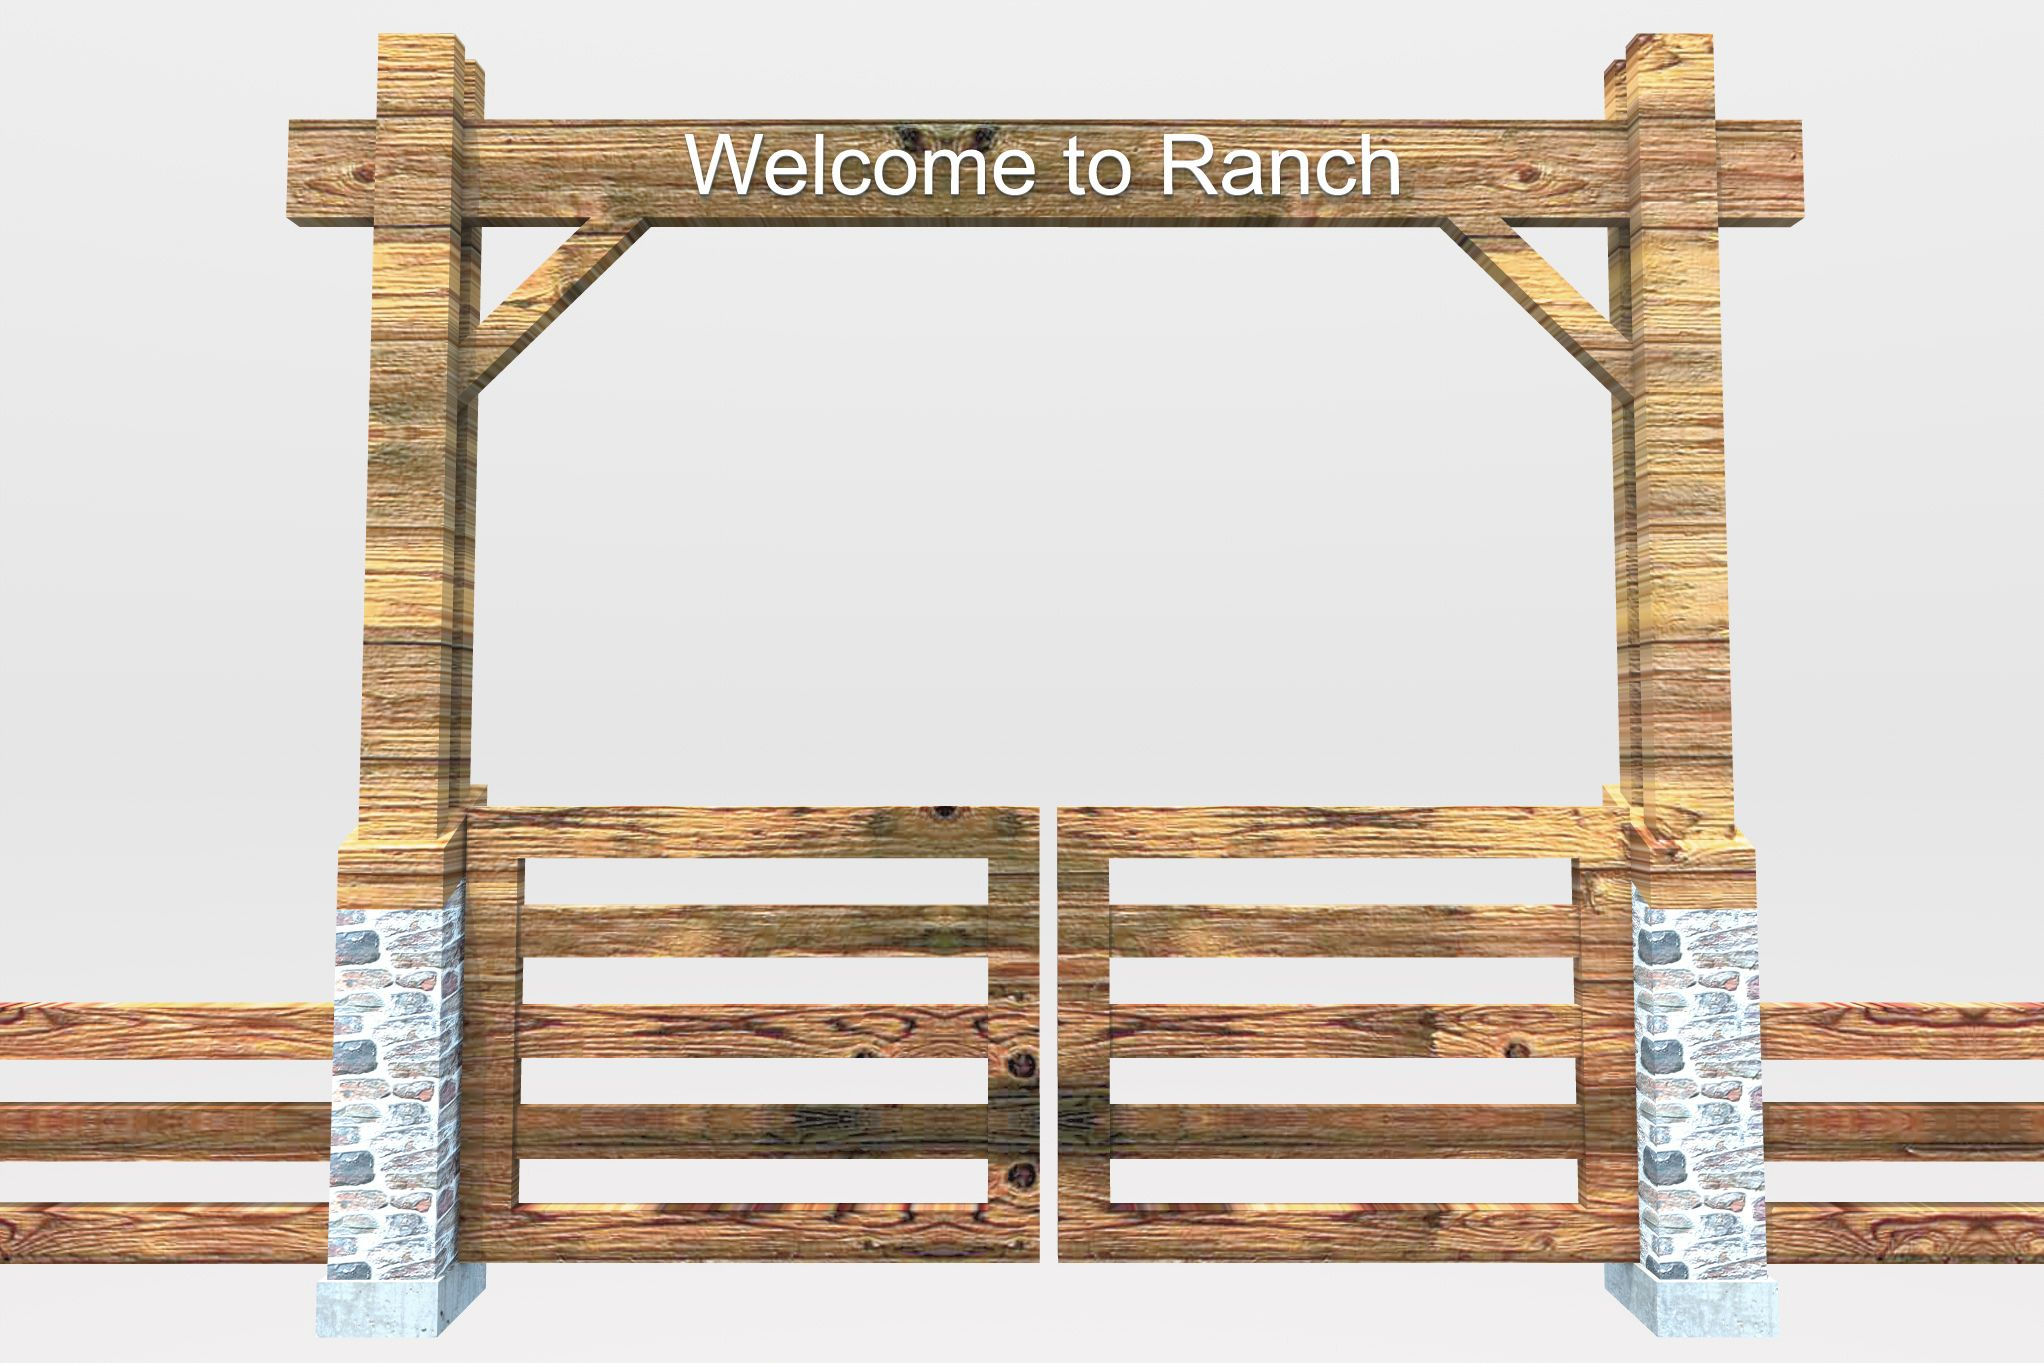 Farm Fence Clipart pix for > ranch gate clipart | ideas for the house | pinterest